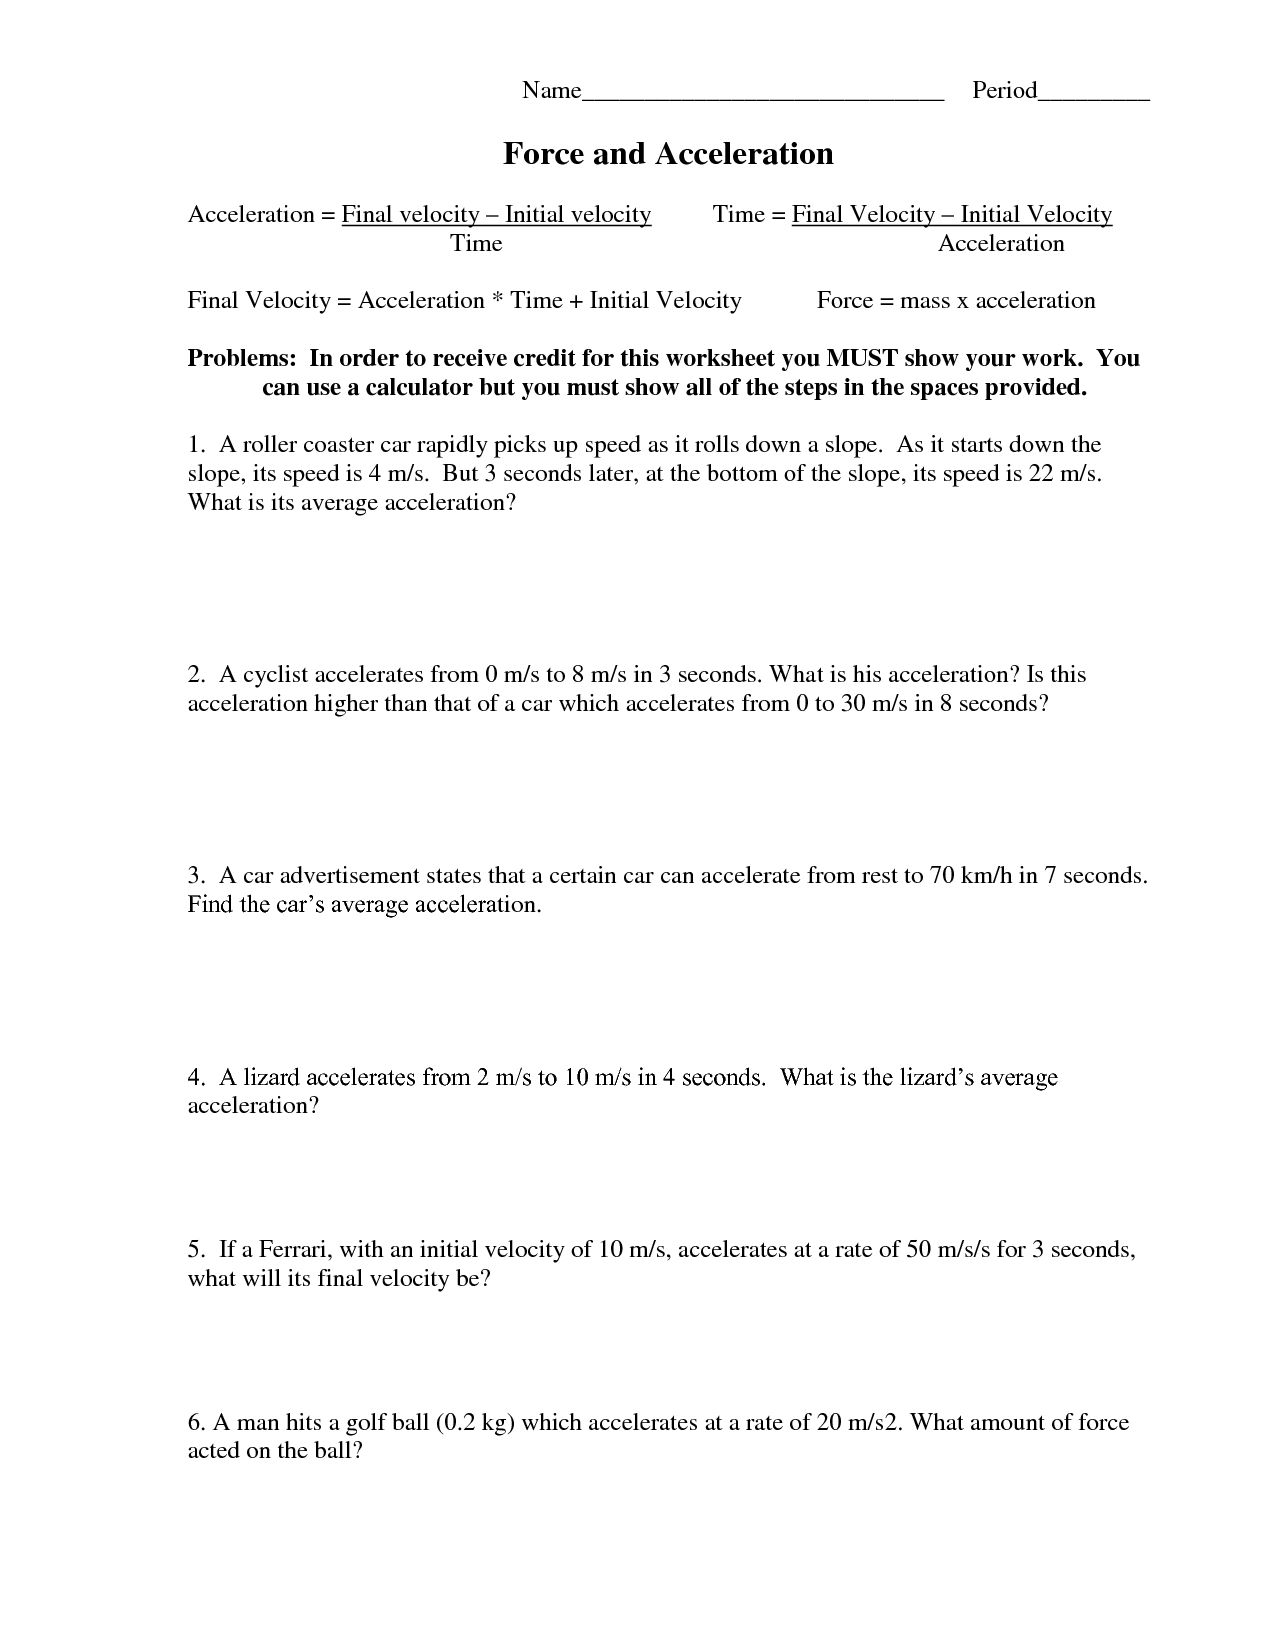 Force Mass And Acceleration Worksheet